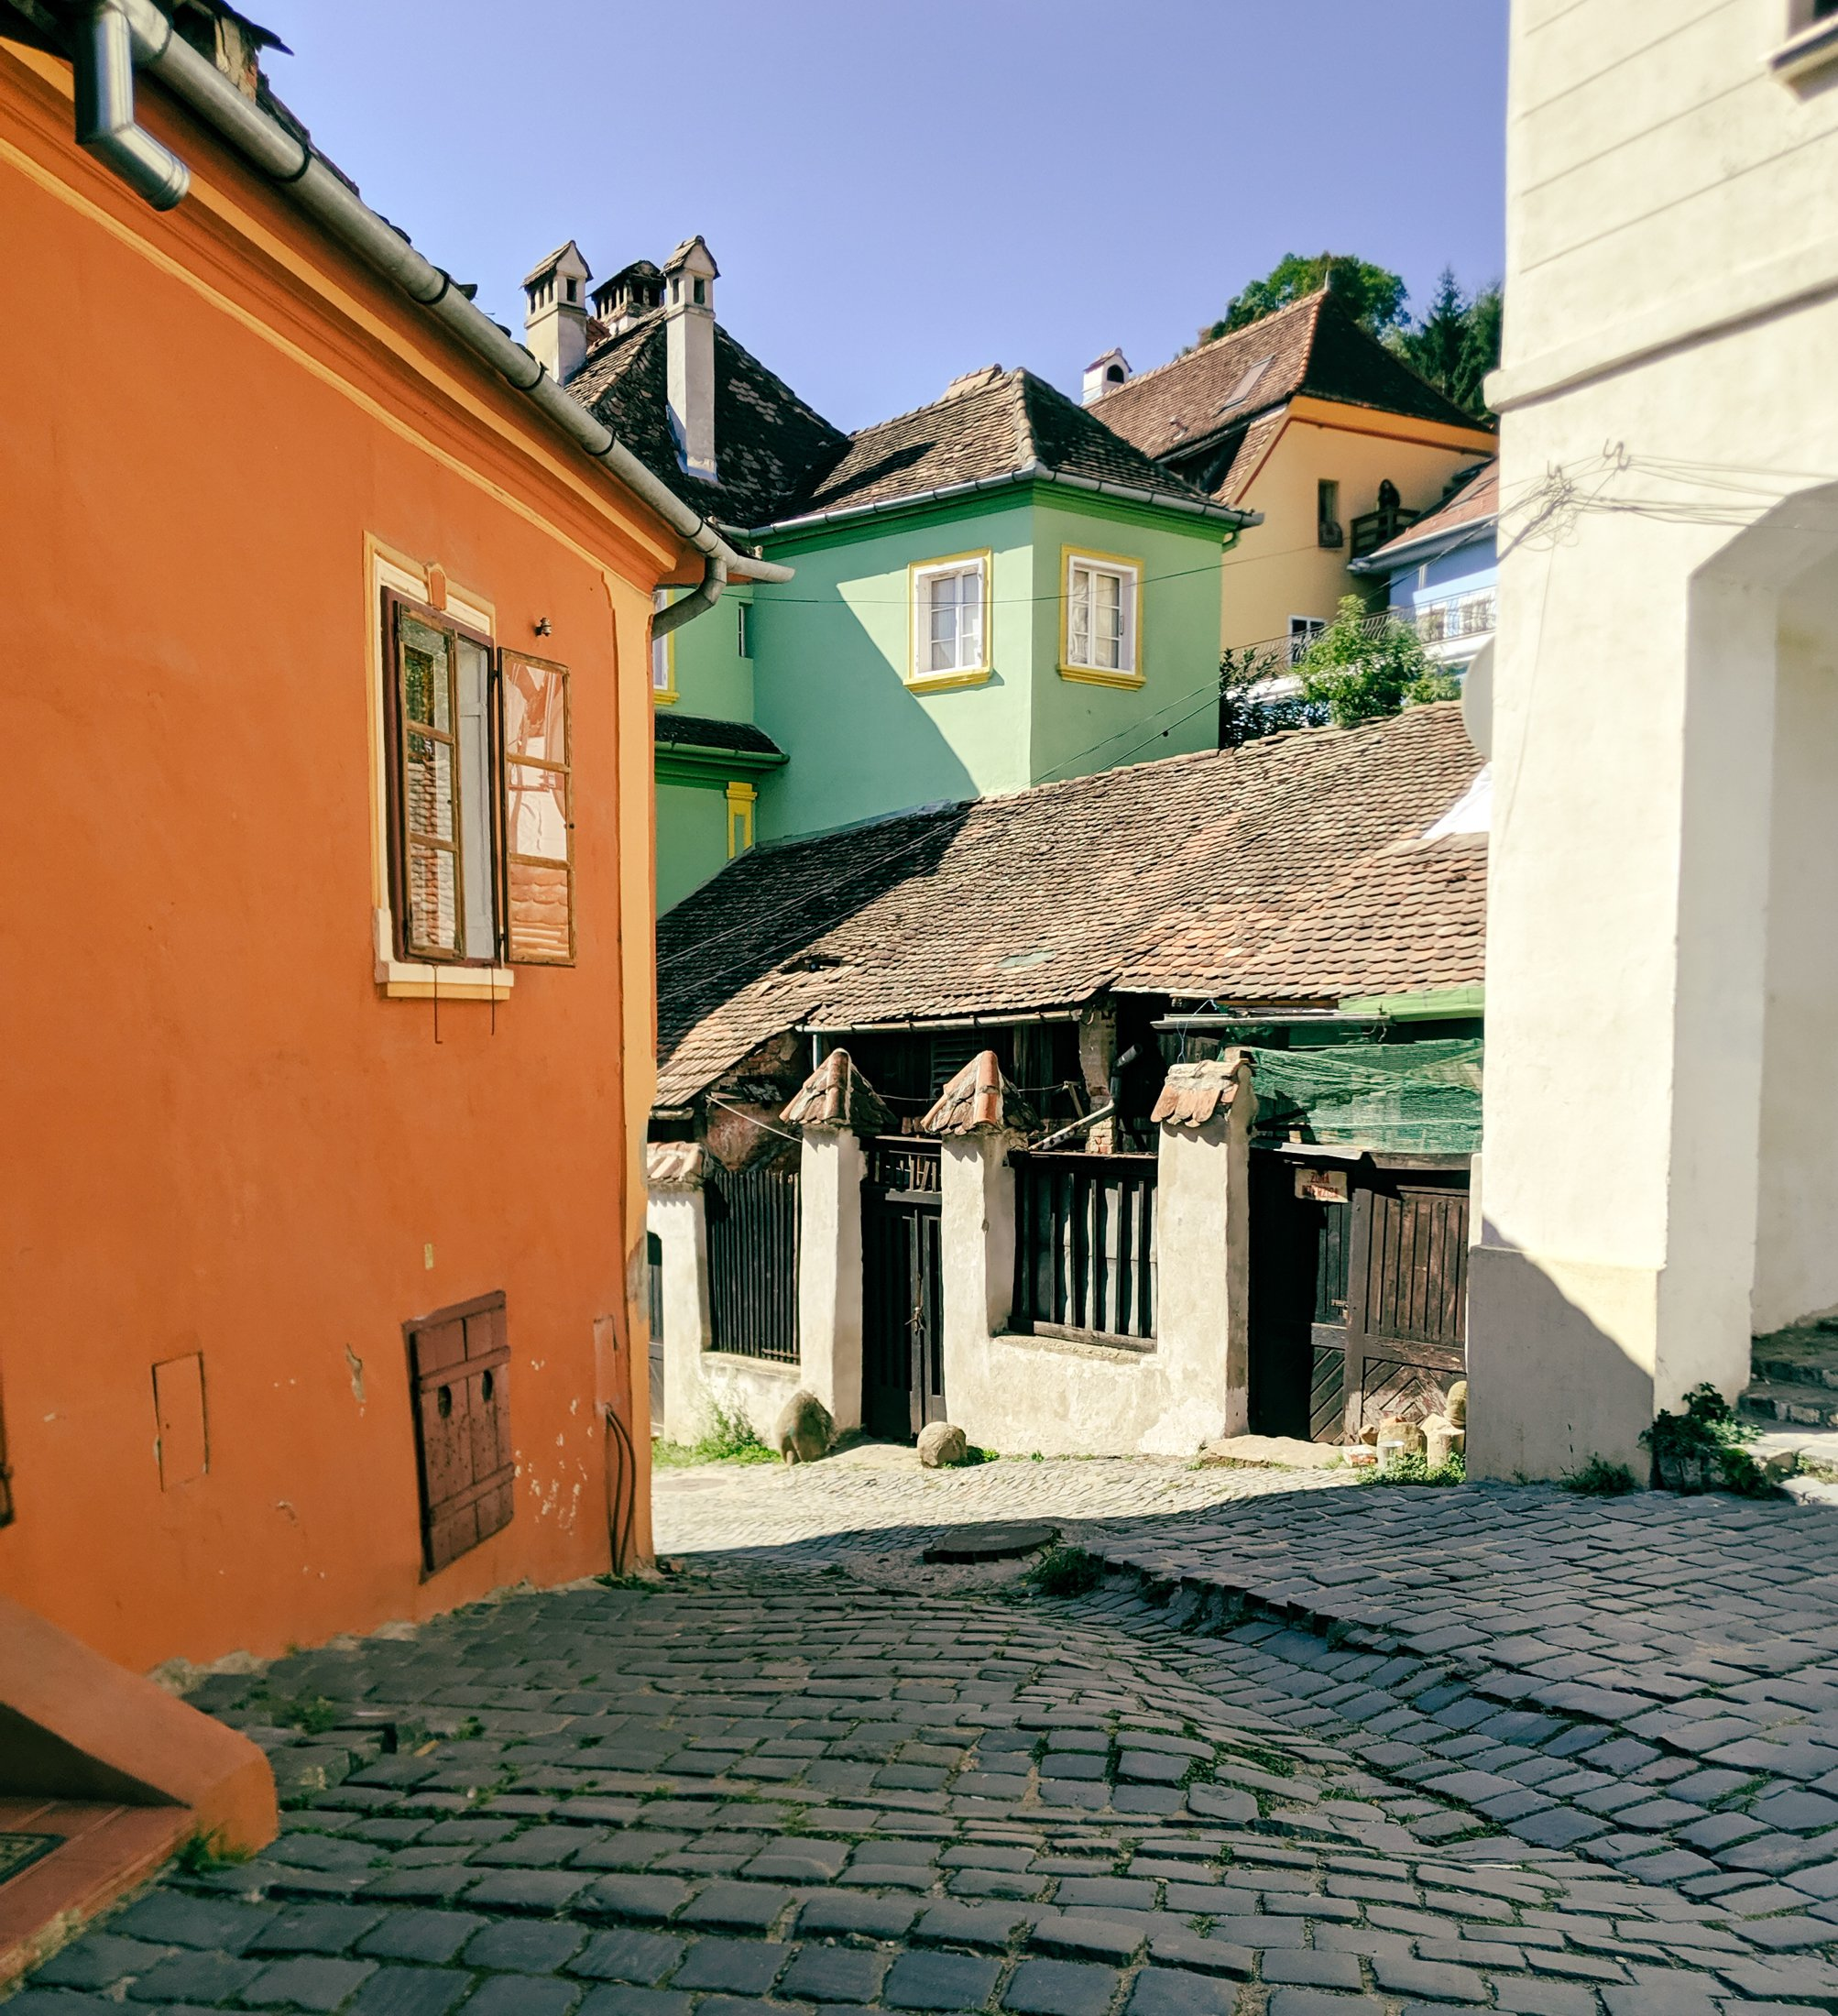 The colorful streets of sighisoara romania.